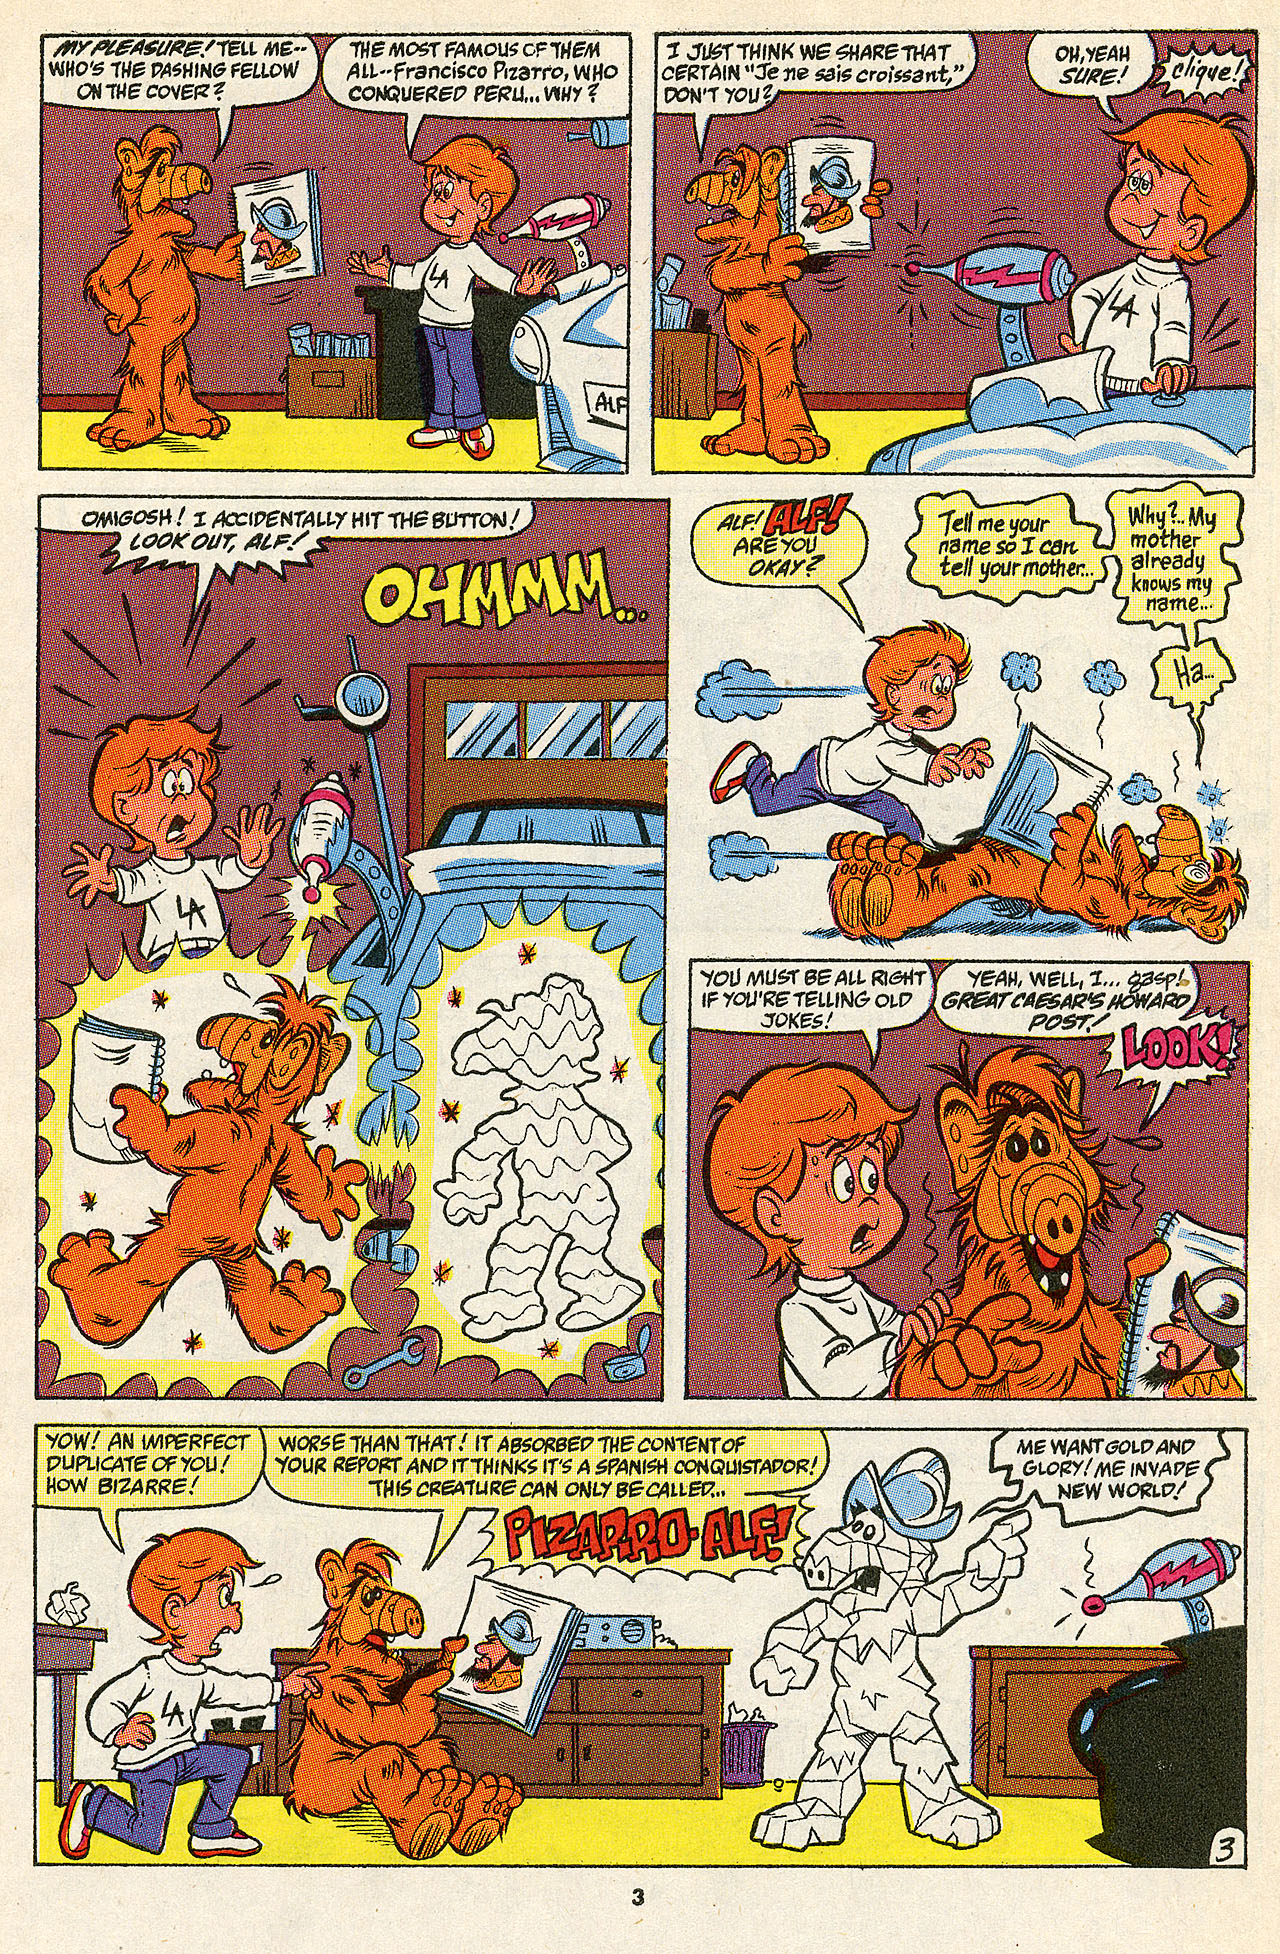 Read online ALF comic -  Issue #39 - 5